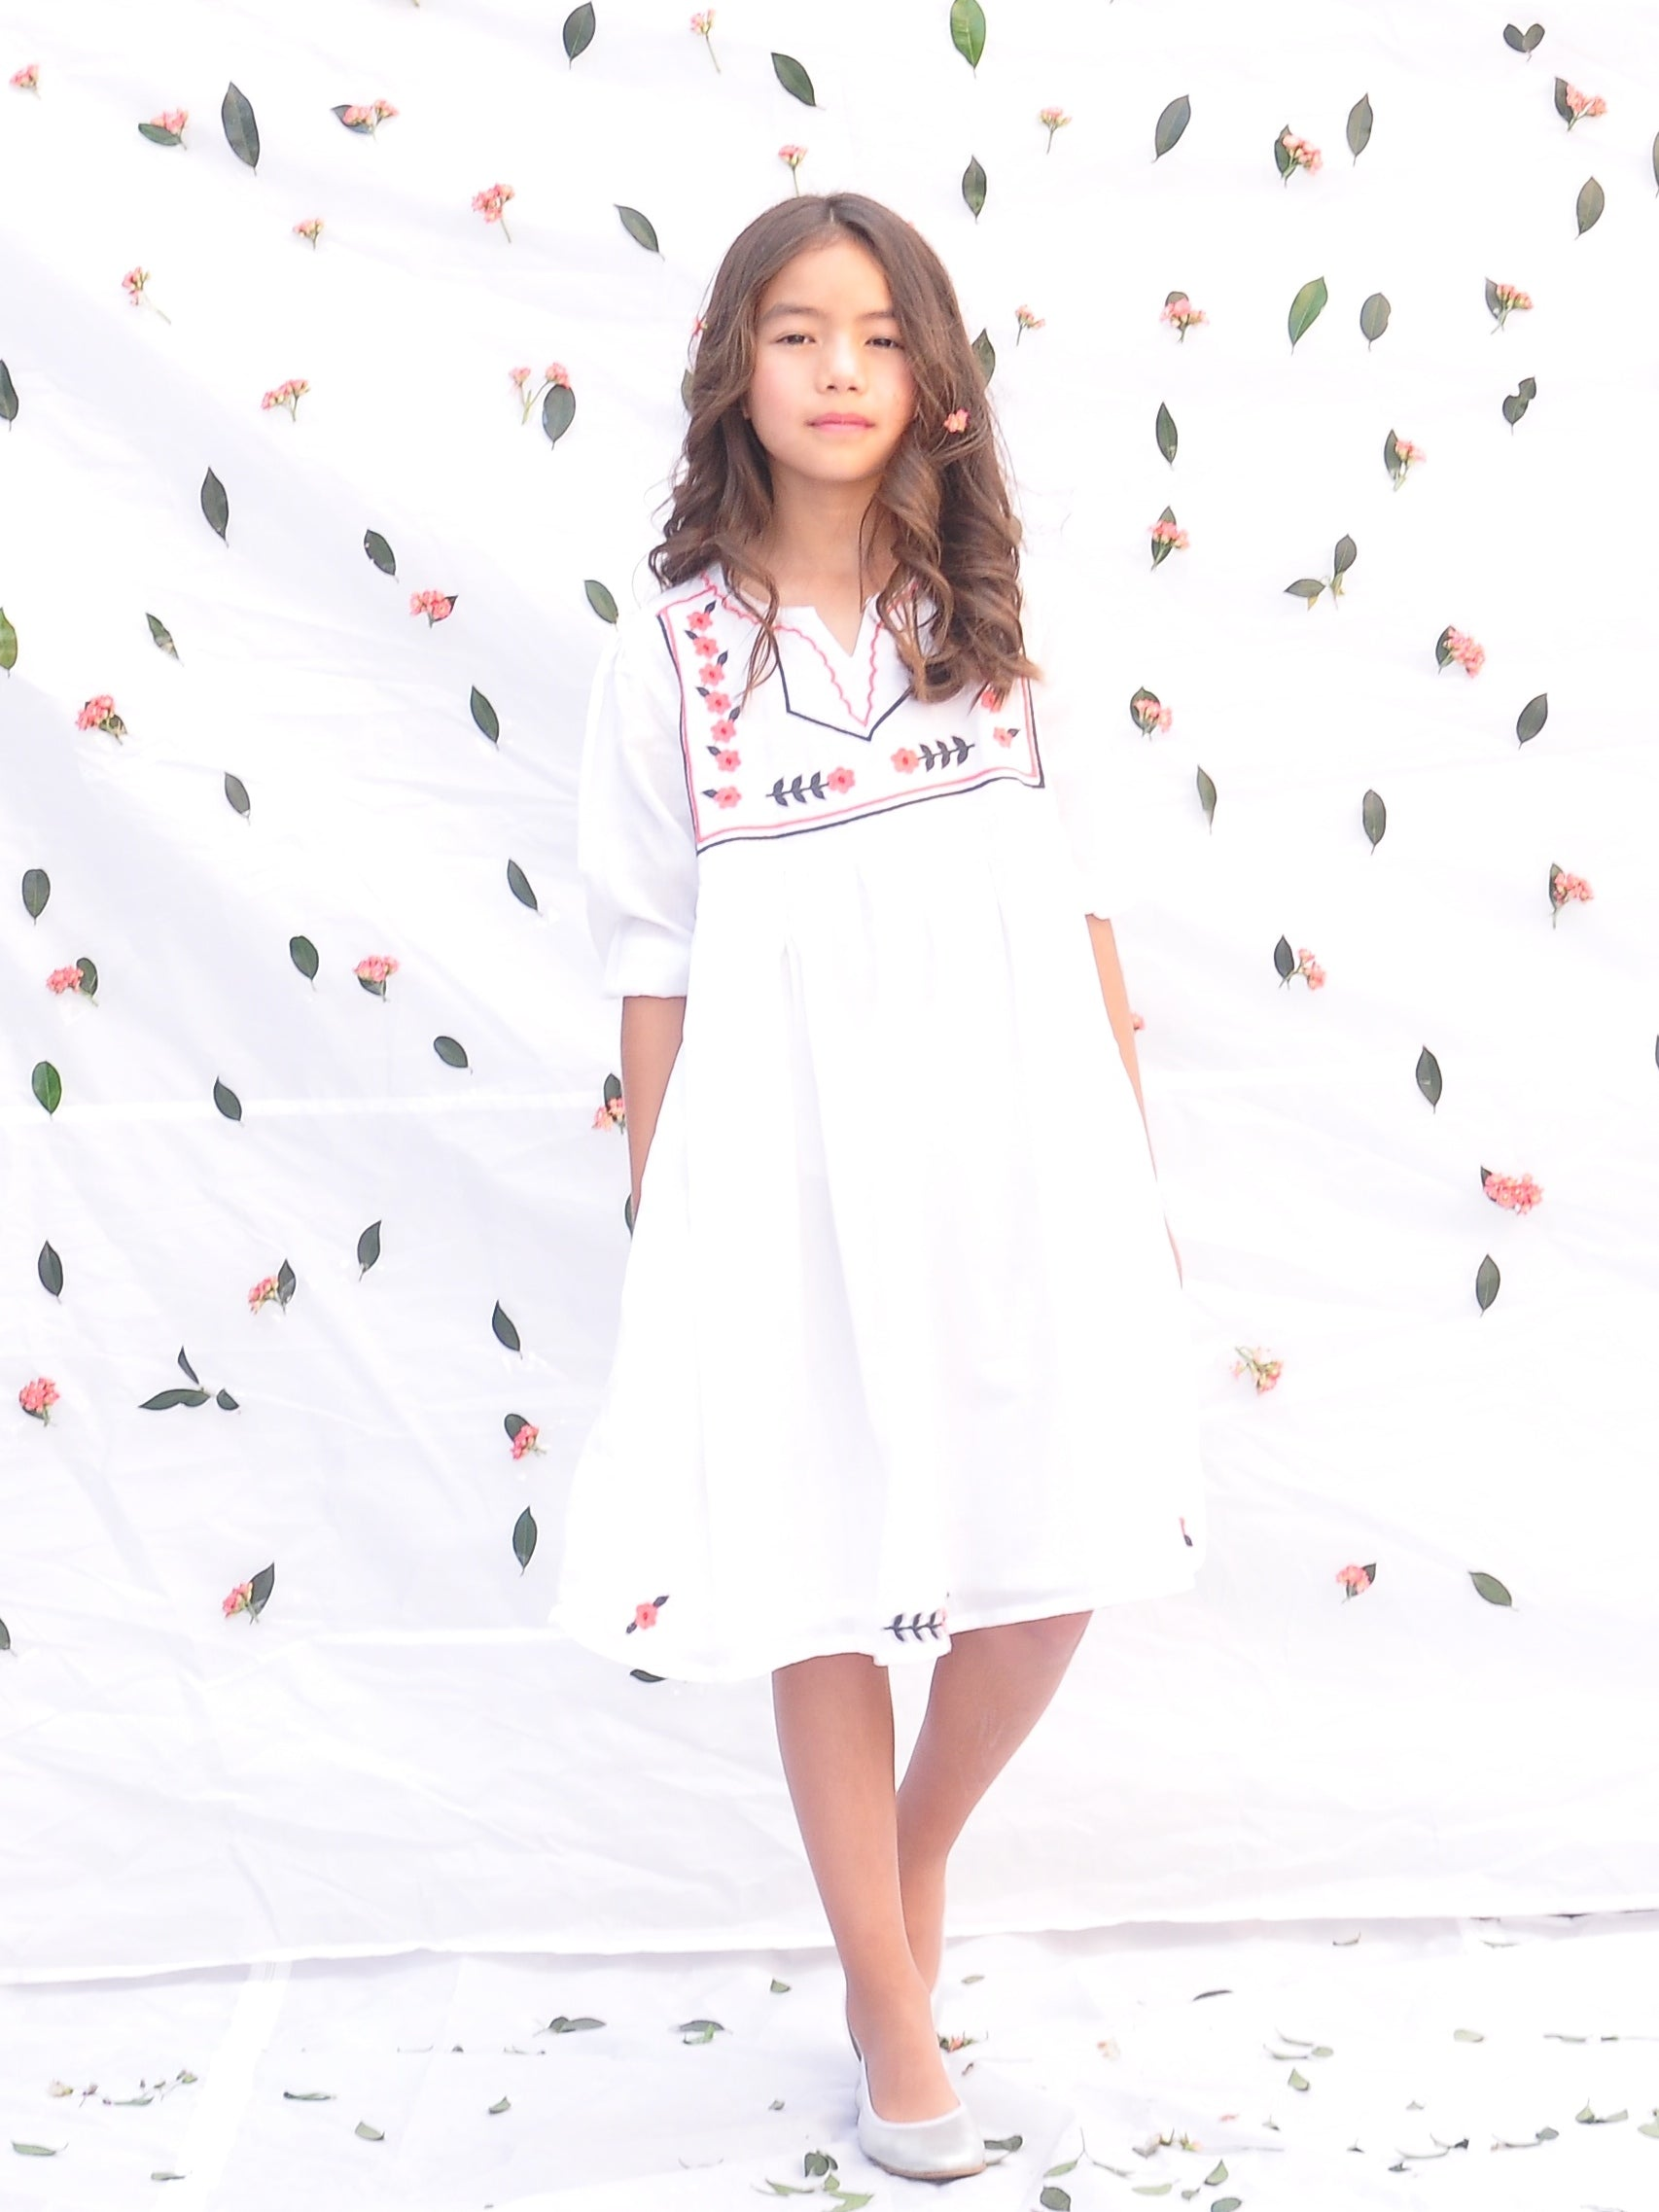 Embroidered Cotton Dress - vsolochildren